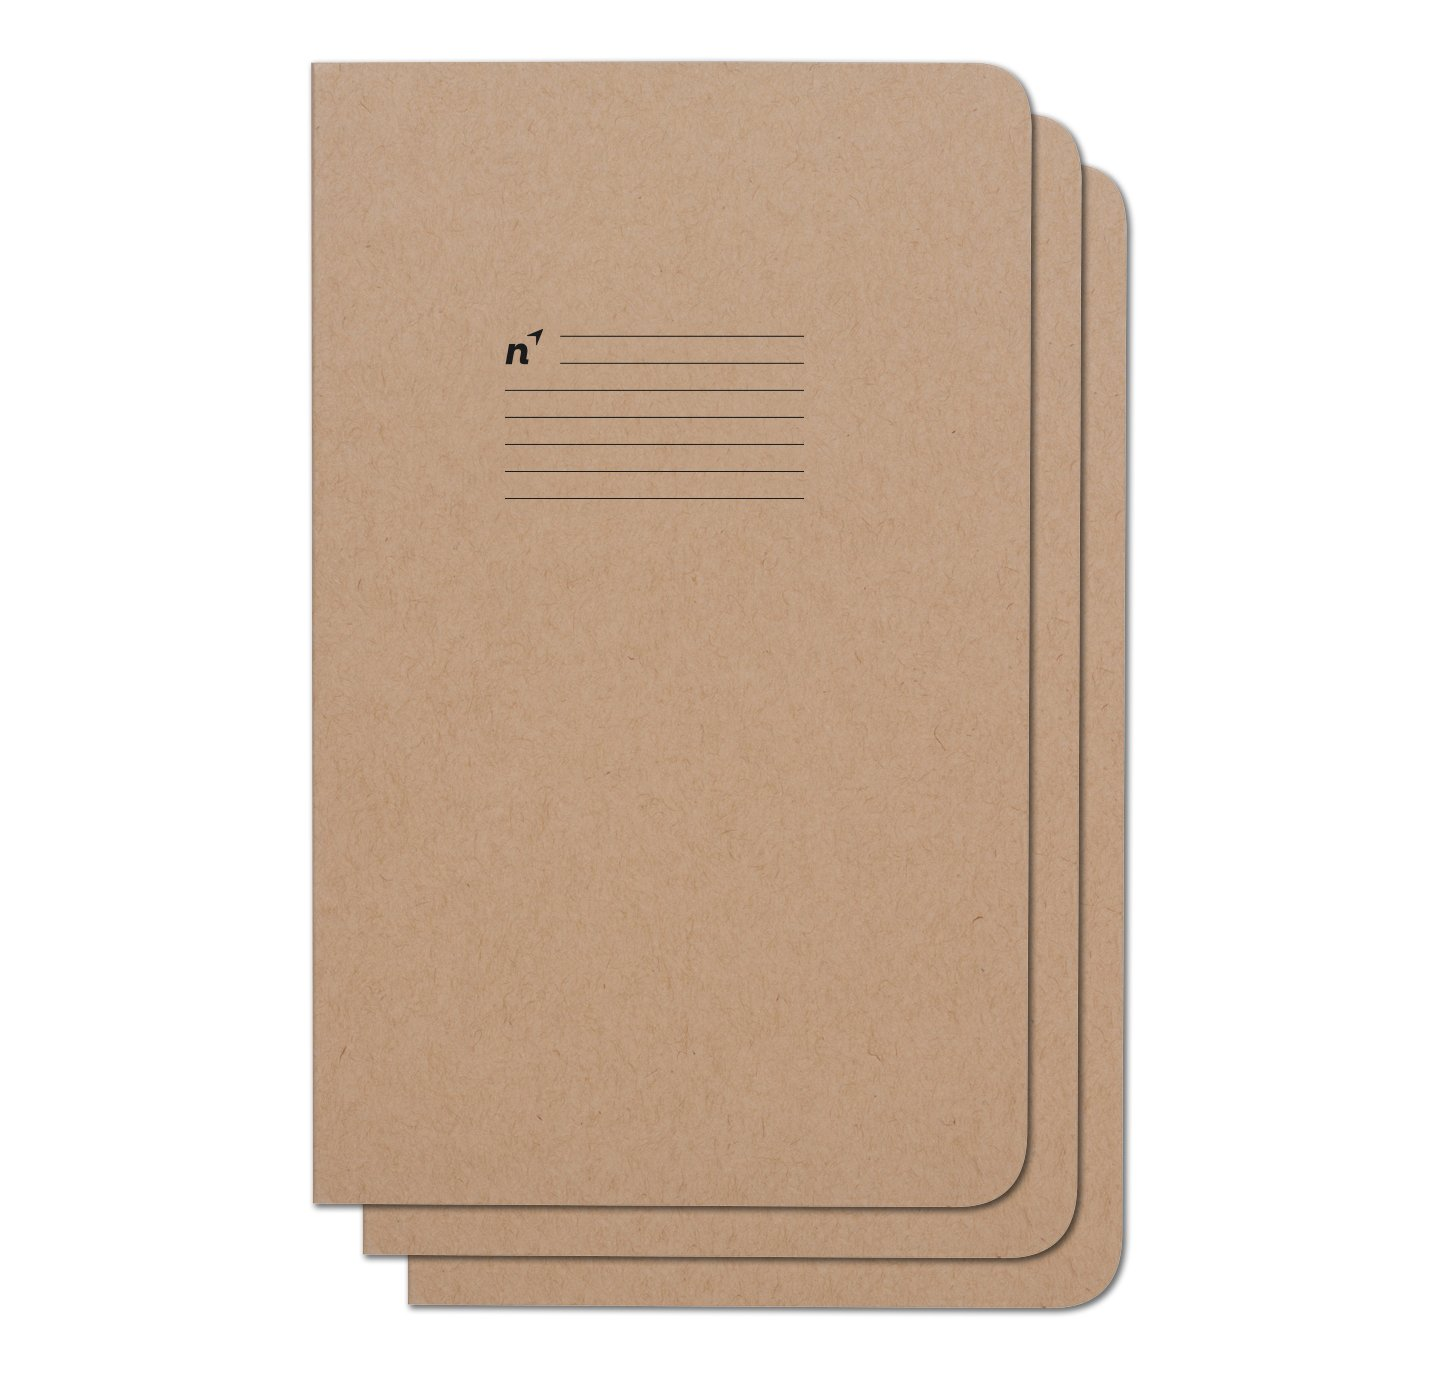 Northbooks USA Eco Journal Writing Notebook   Lined College Ruled Pages   3 Premium Recycled Notebooks   5x8